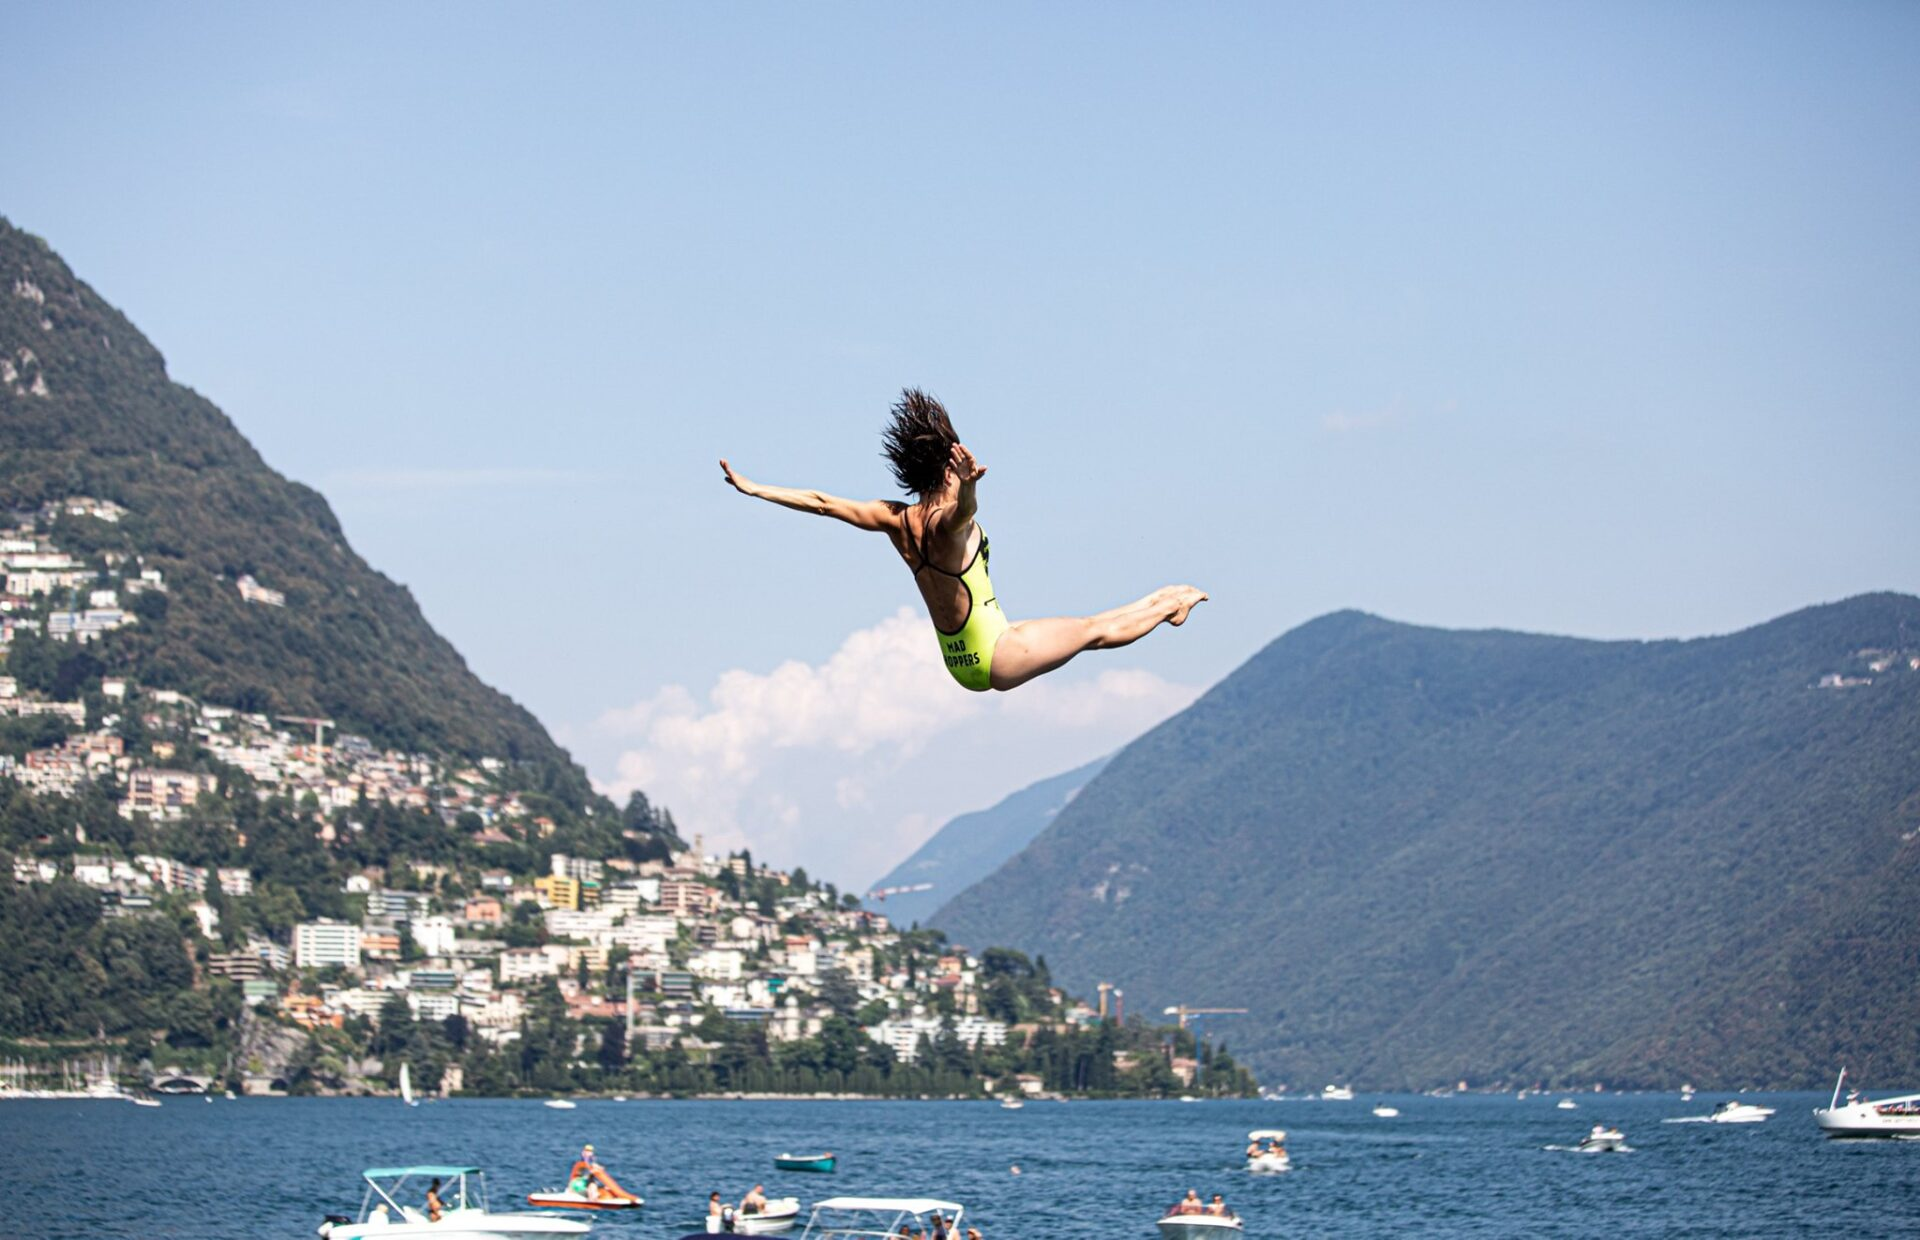 Lugano Cliff Diving 2020